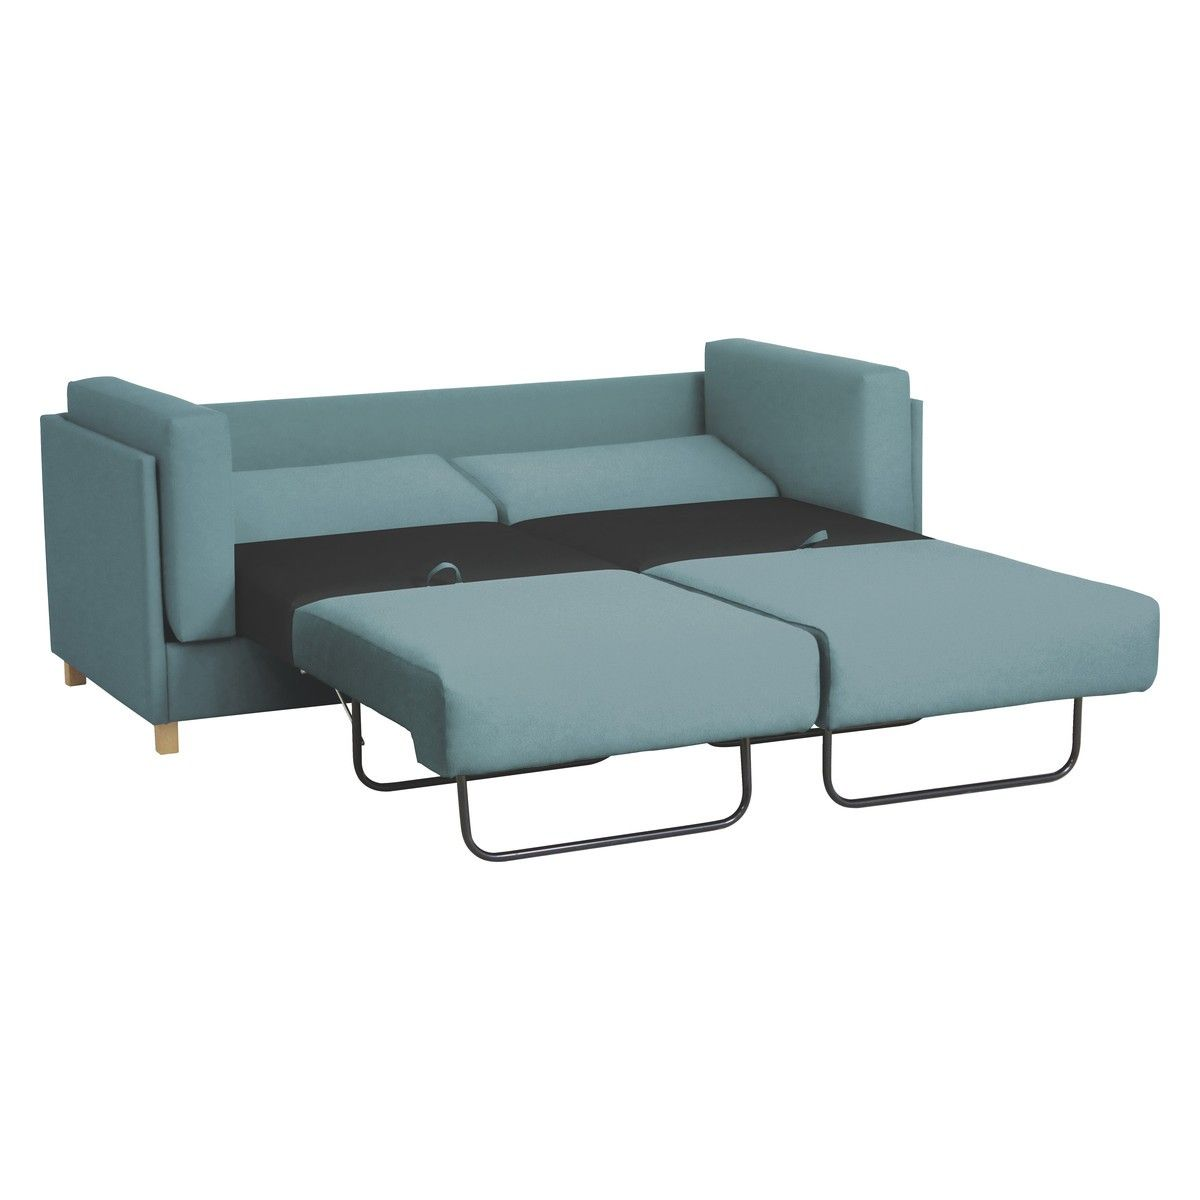 COLOMBO Teal Blue Fabric 3 Seater Sofa Bed